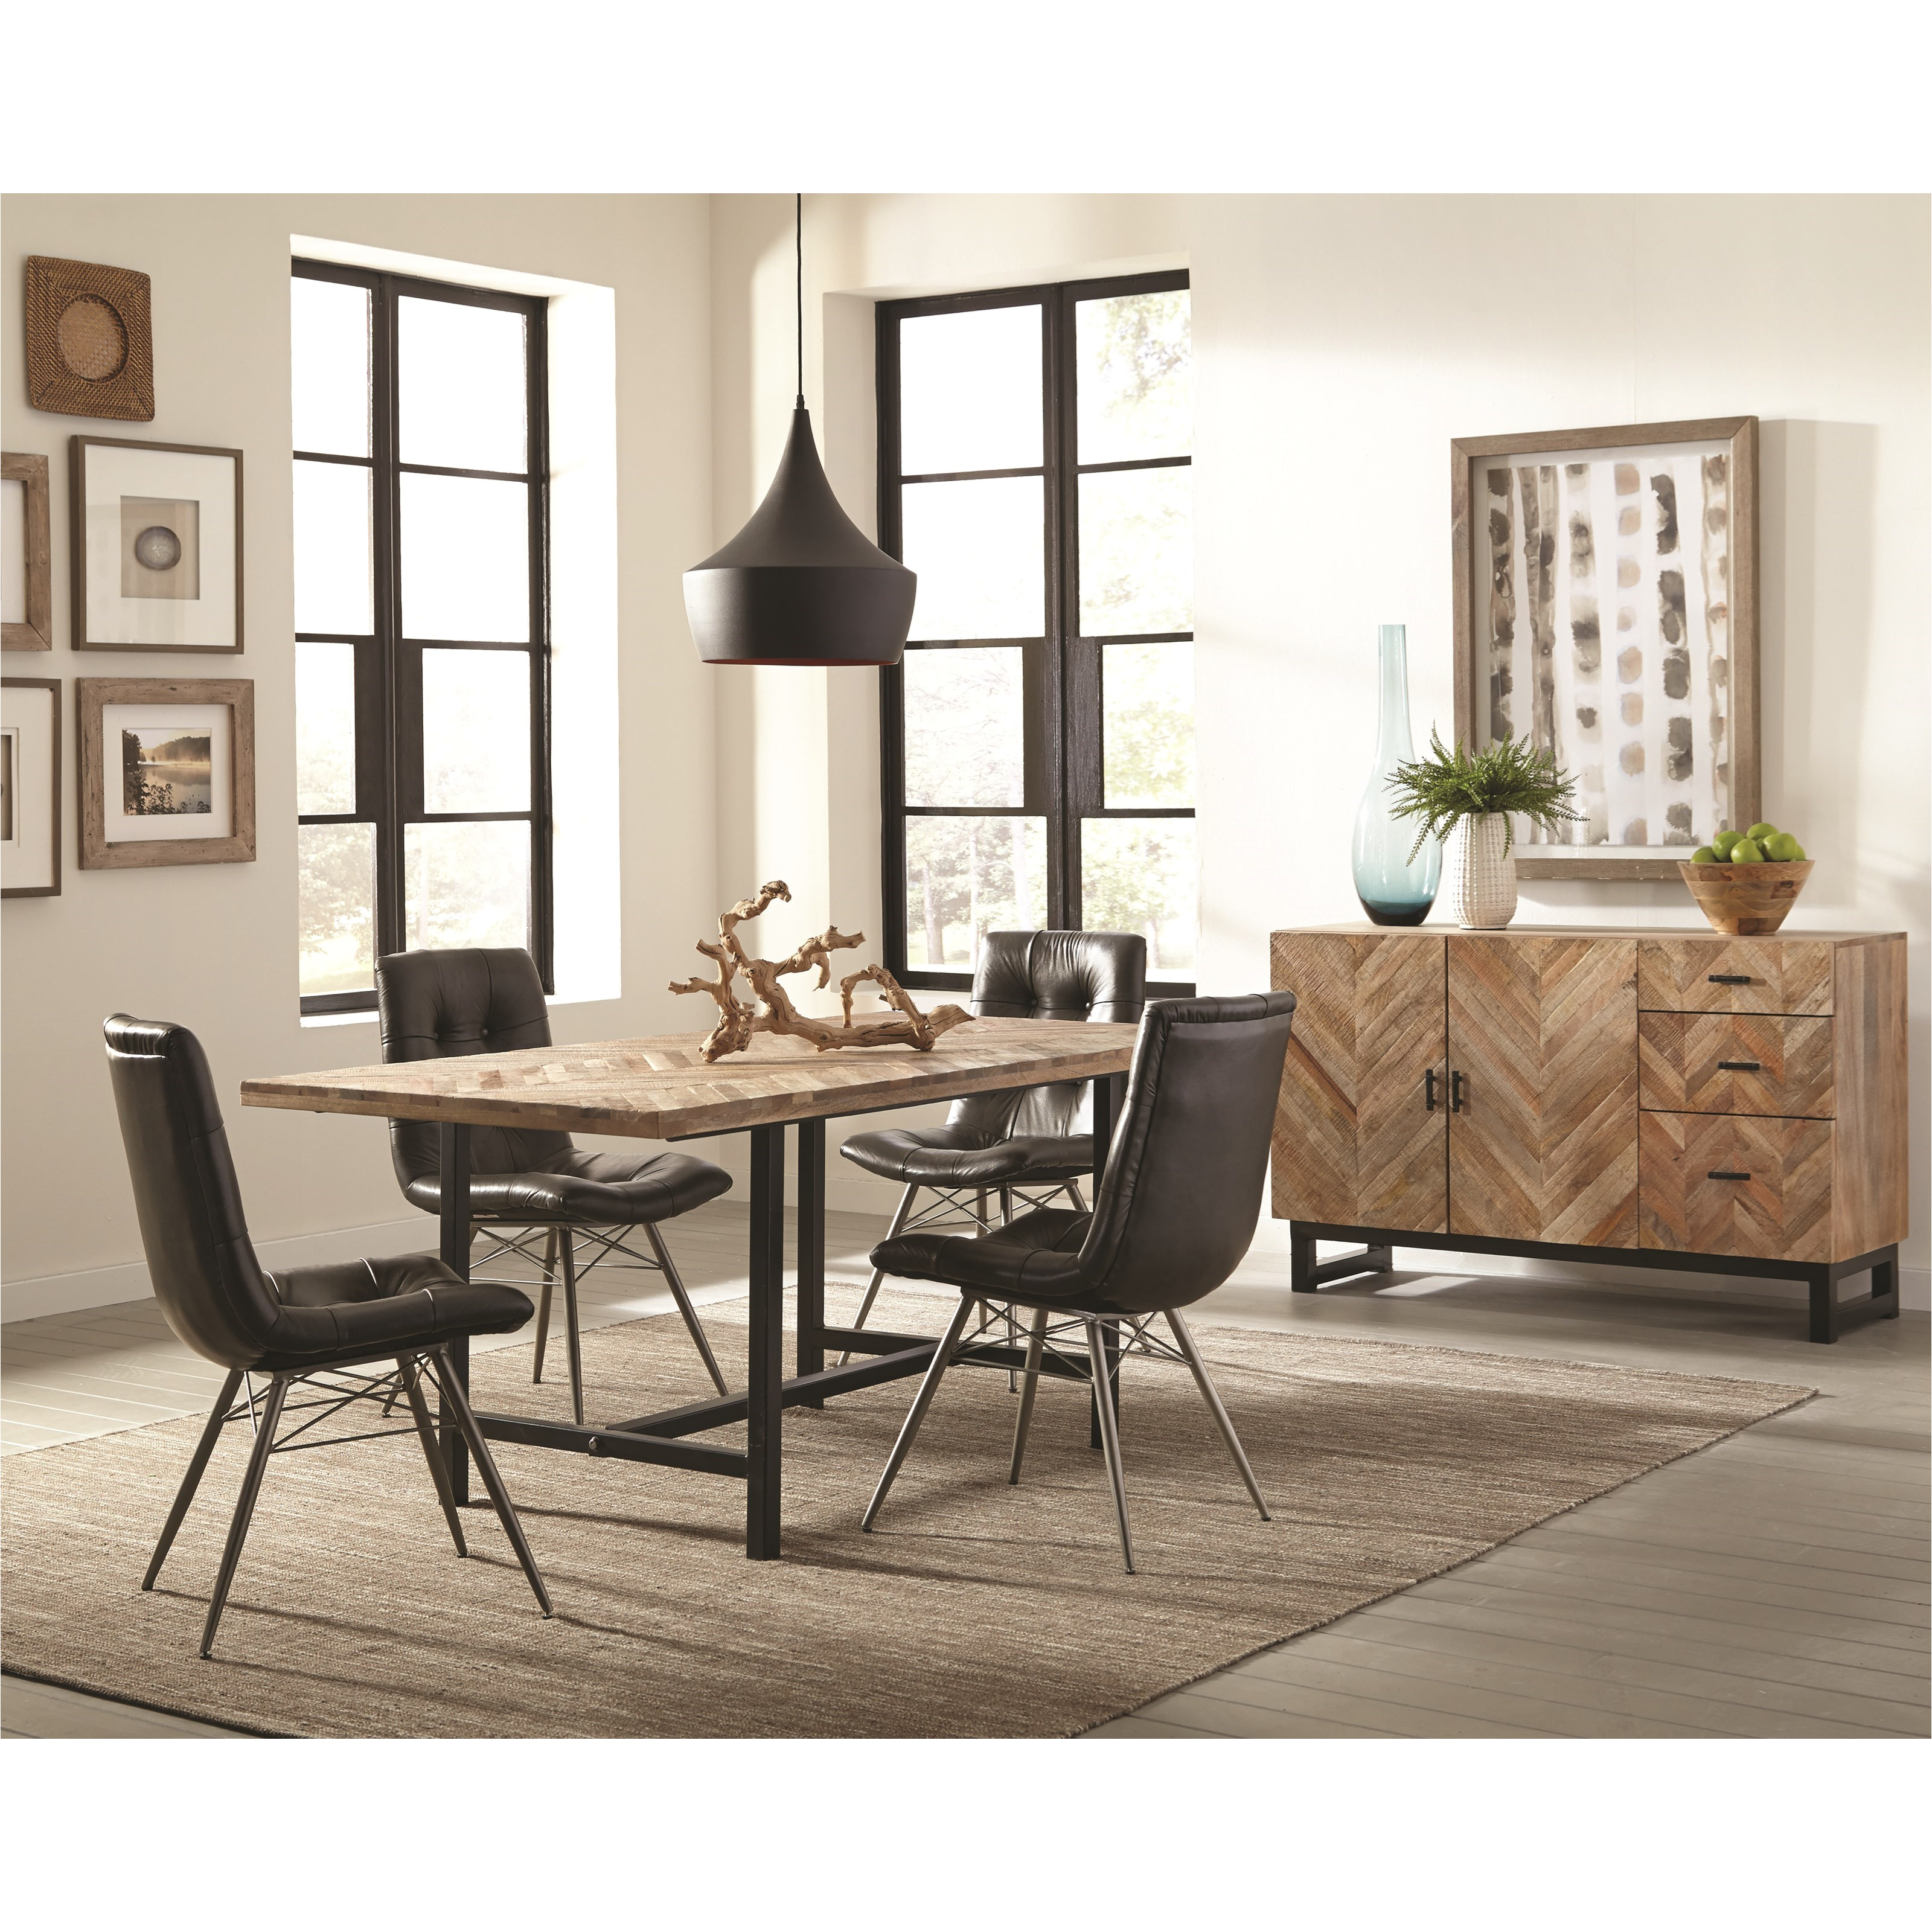 full size of cheap furniture cheap furniture near me sectional sofas under 300 under 100 dollar